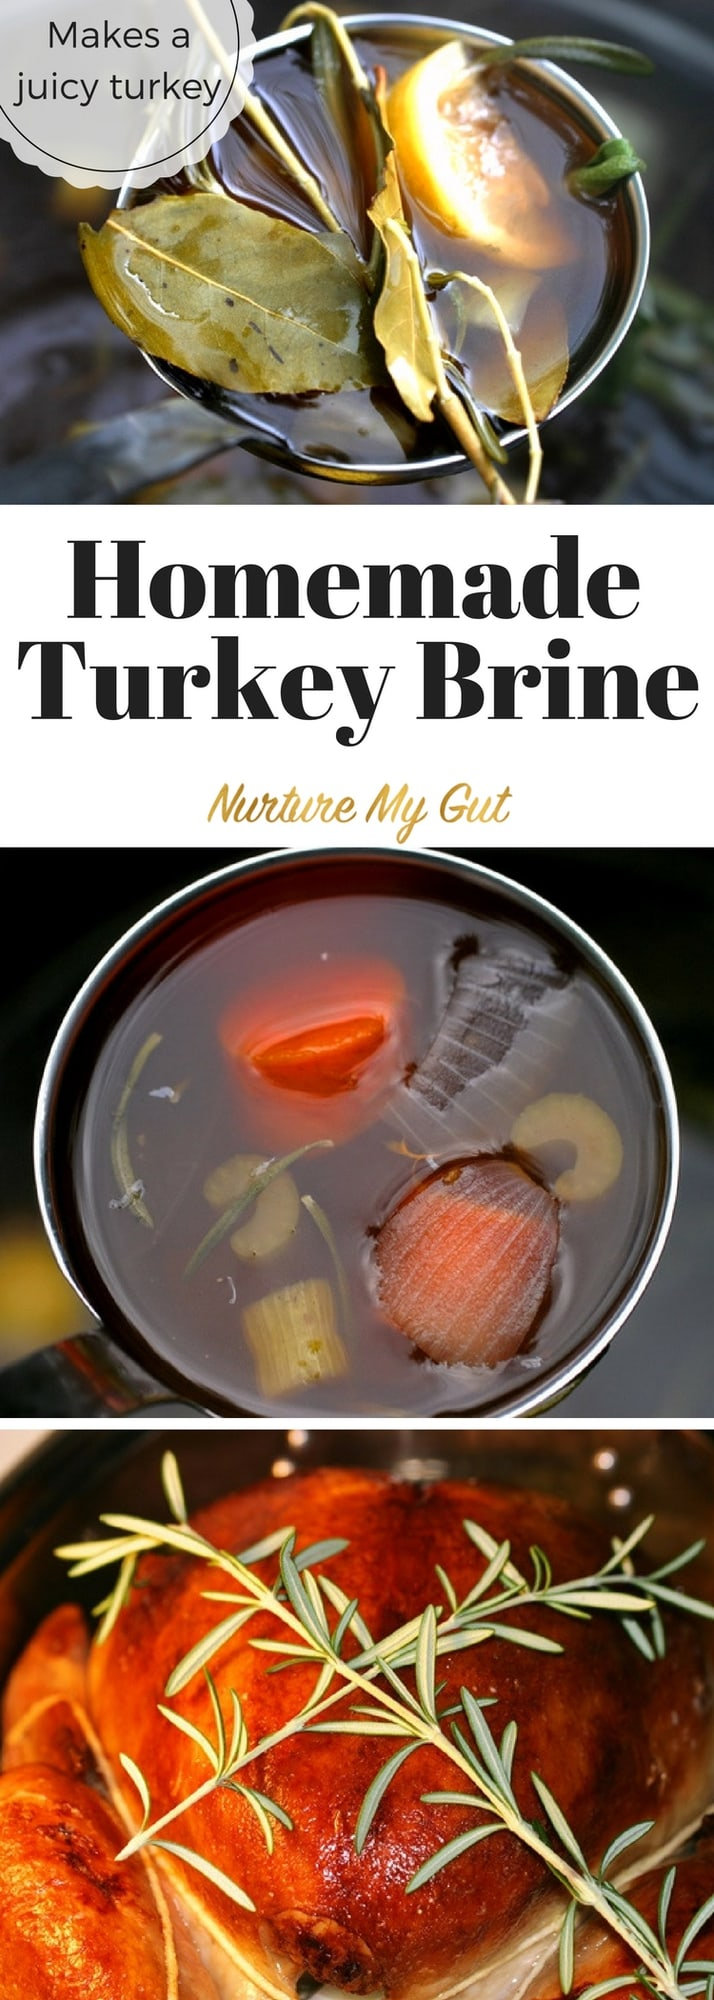 easy homemade turkey brine